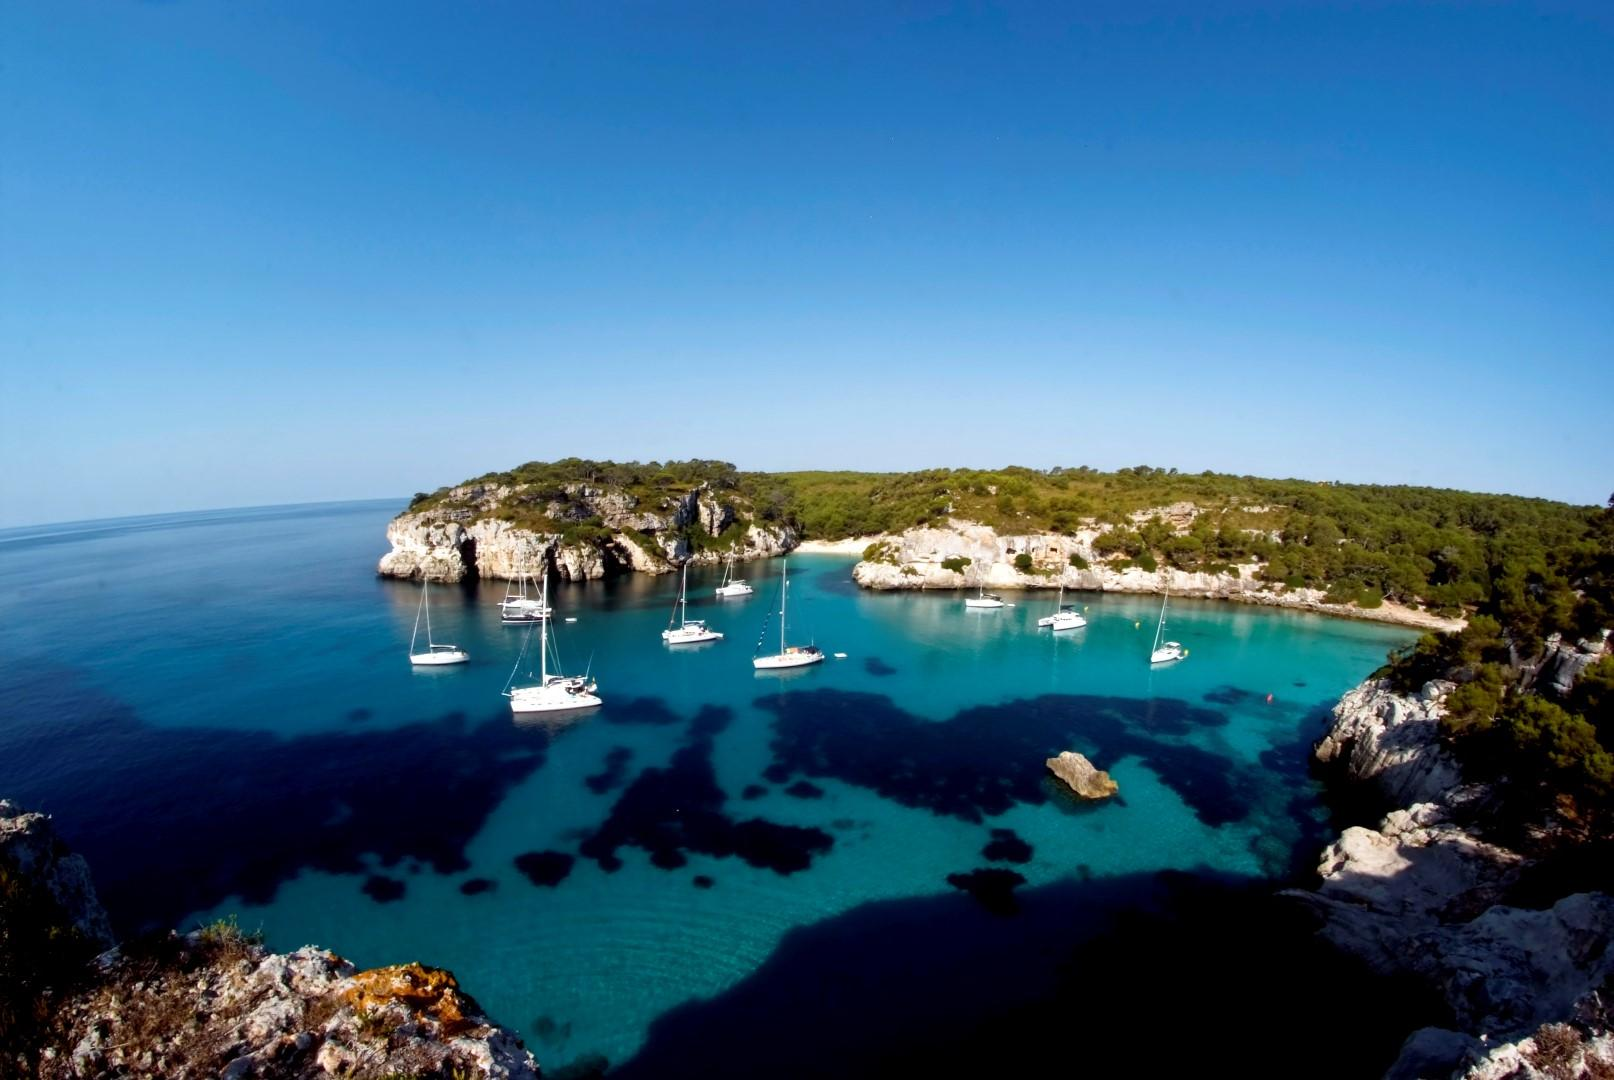 The beautiful spring of the Balearic islands